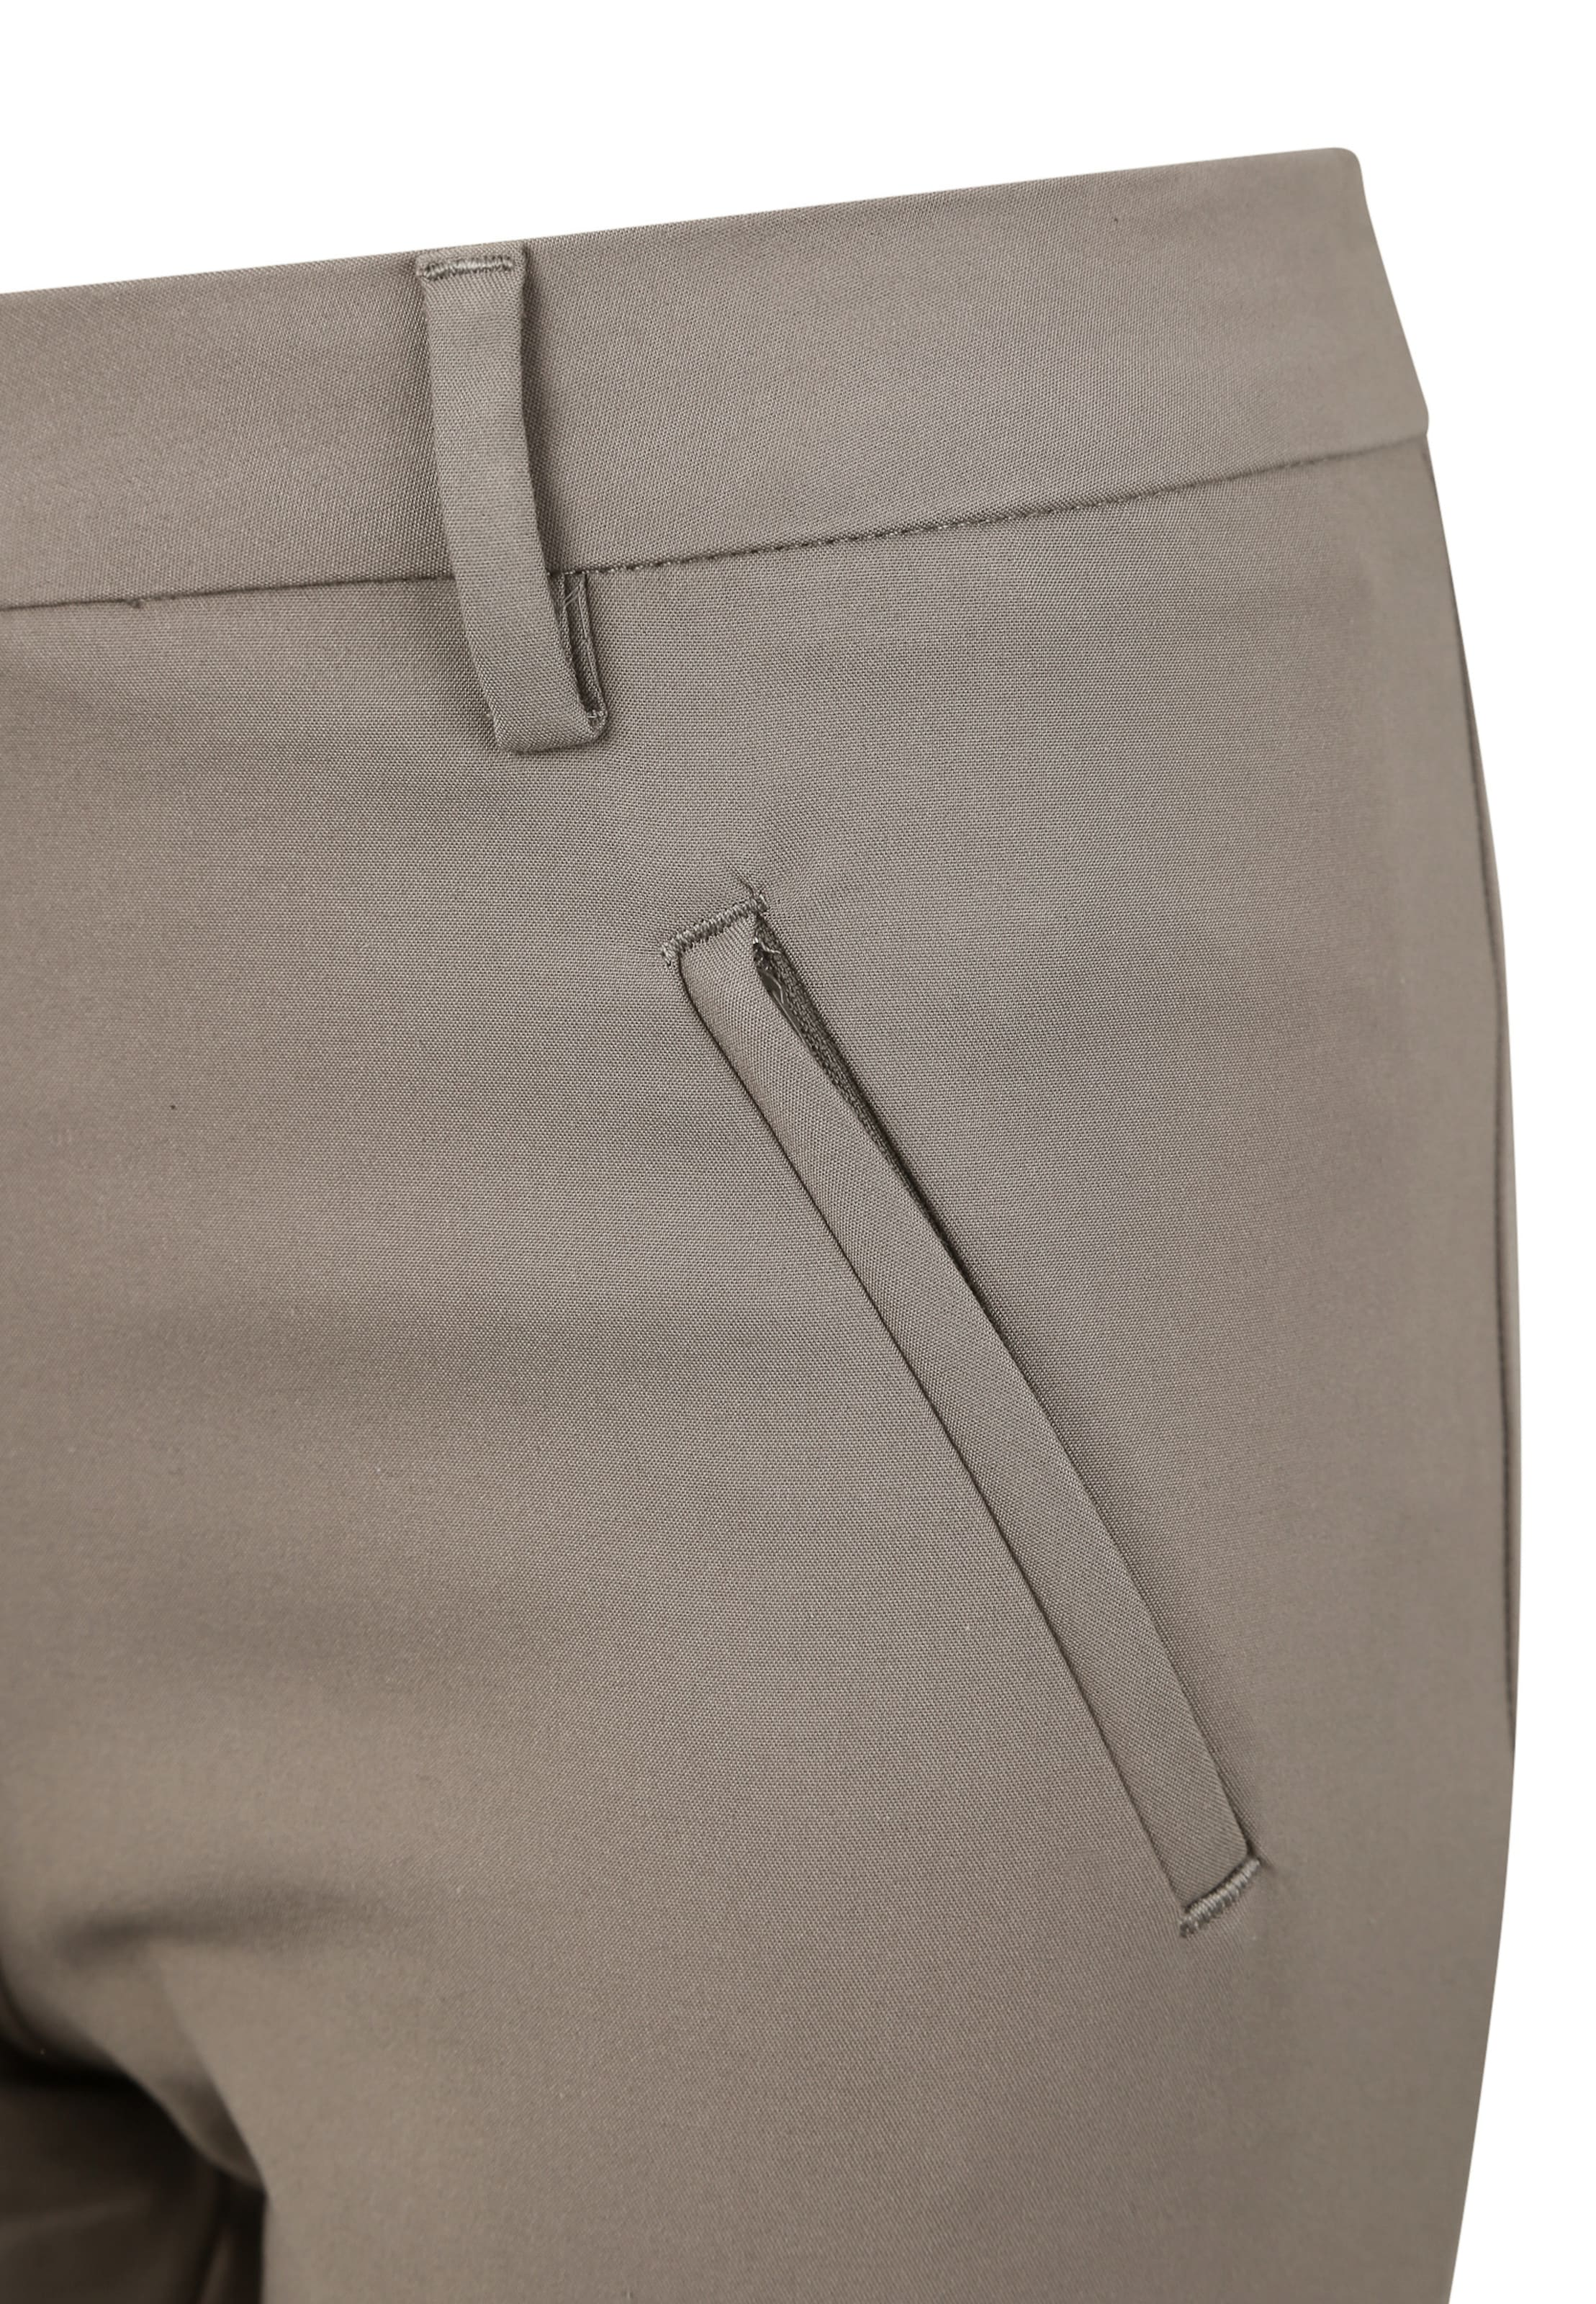 Taupe Hose In Hose In Fiveunits Fiveunits 'angelie' Hose 'angelie' Fiveunits Taupe uTc3JFK1l5